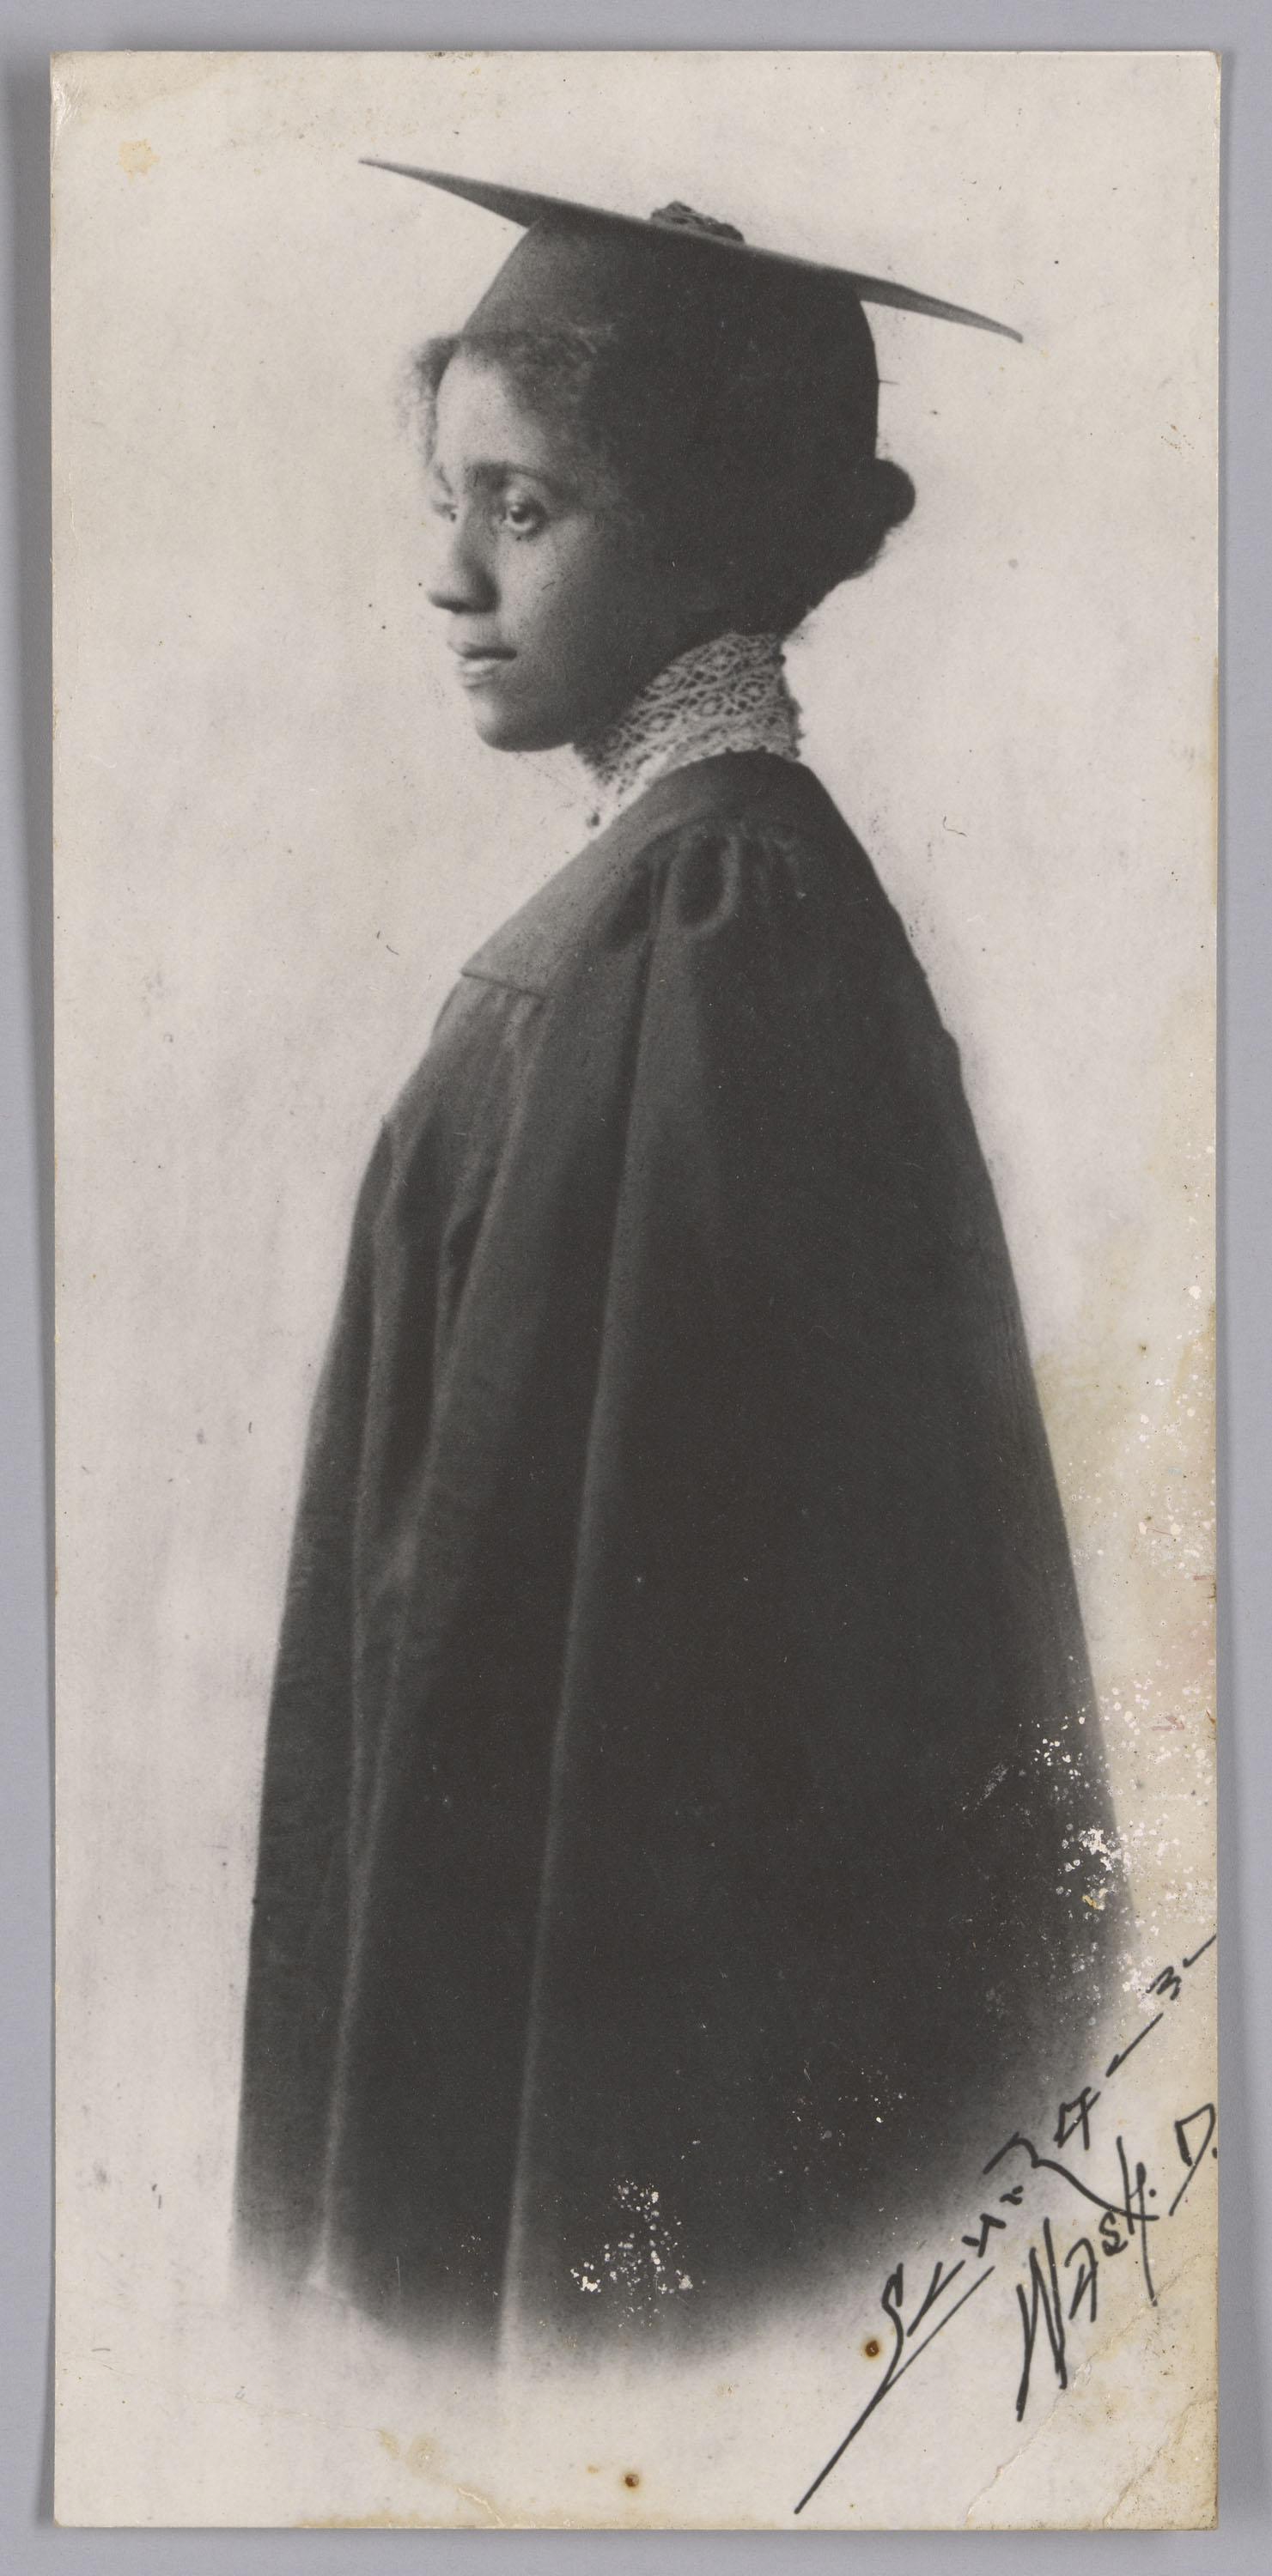 Black and white portrait of a woman in graduation attire. The woman is standing with the left side of her body faceing the camera and is wearing a graduation cap and gown. Her high neck lace blouse is visible underneath her gown. Taken by Addison N. Scurlock, 1900s-1910s. The Scurlock Studio in Washington, D.C., served the city's black community, documenting the milestone moments of their lives.